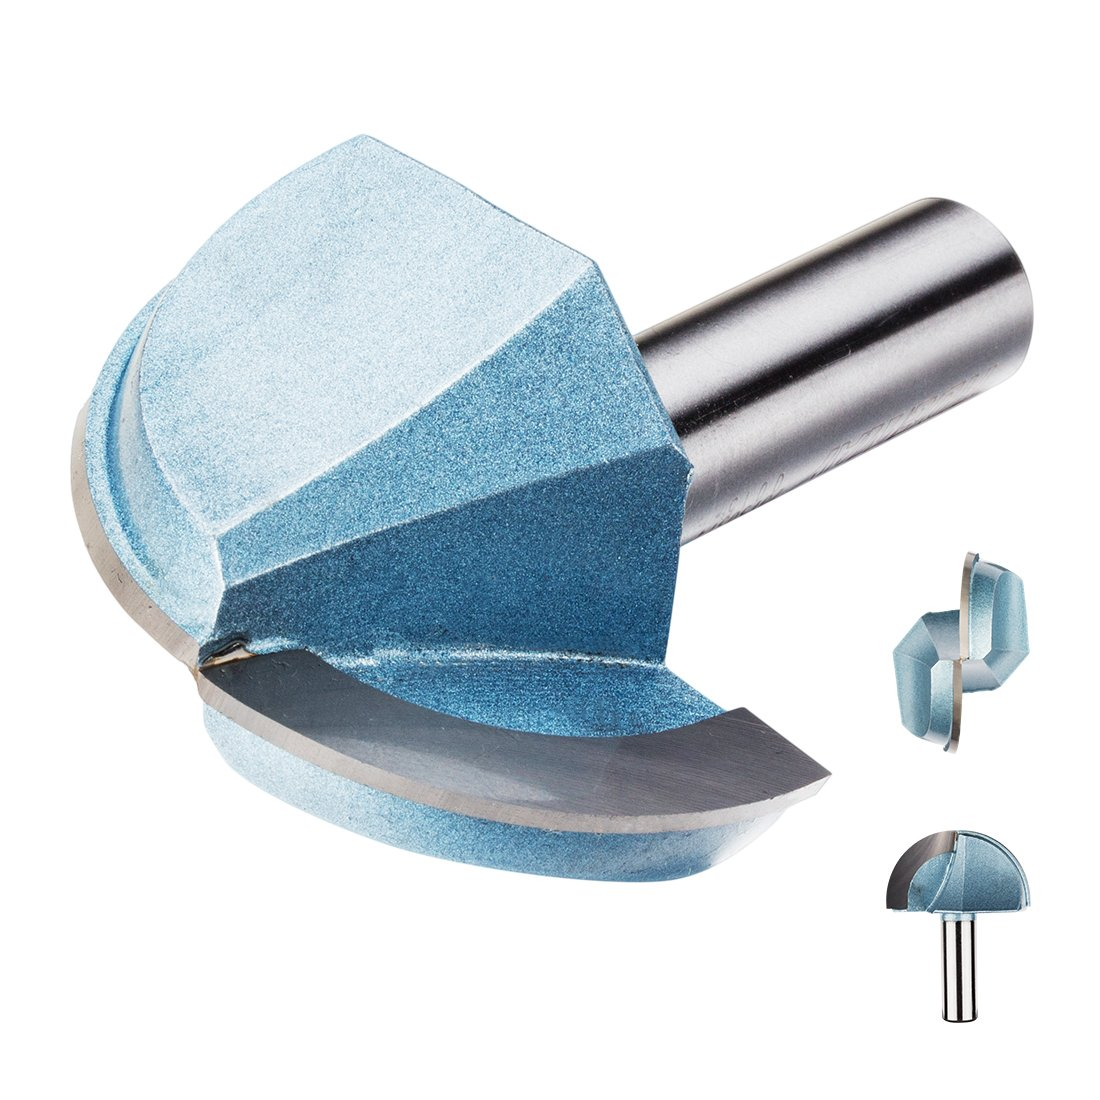 uxcell 2-Inch Diameter 2-Flute Carbide Cove Core Box Router Bit with 1/2-inch Steel Shank